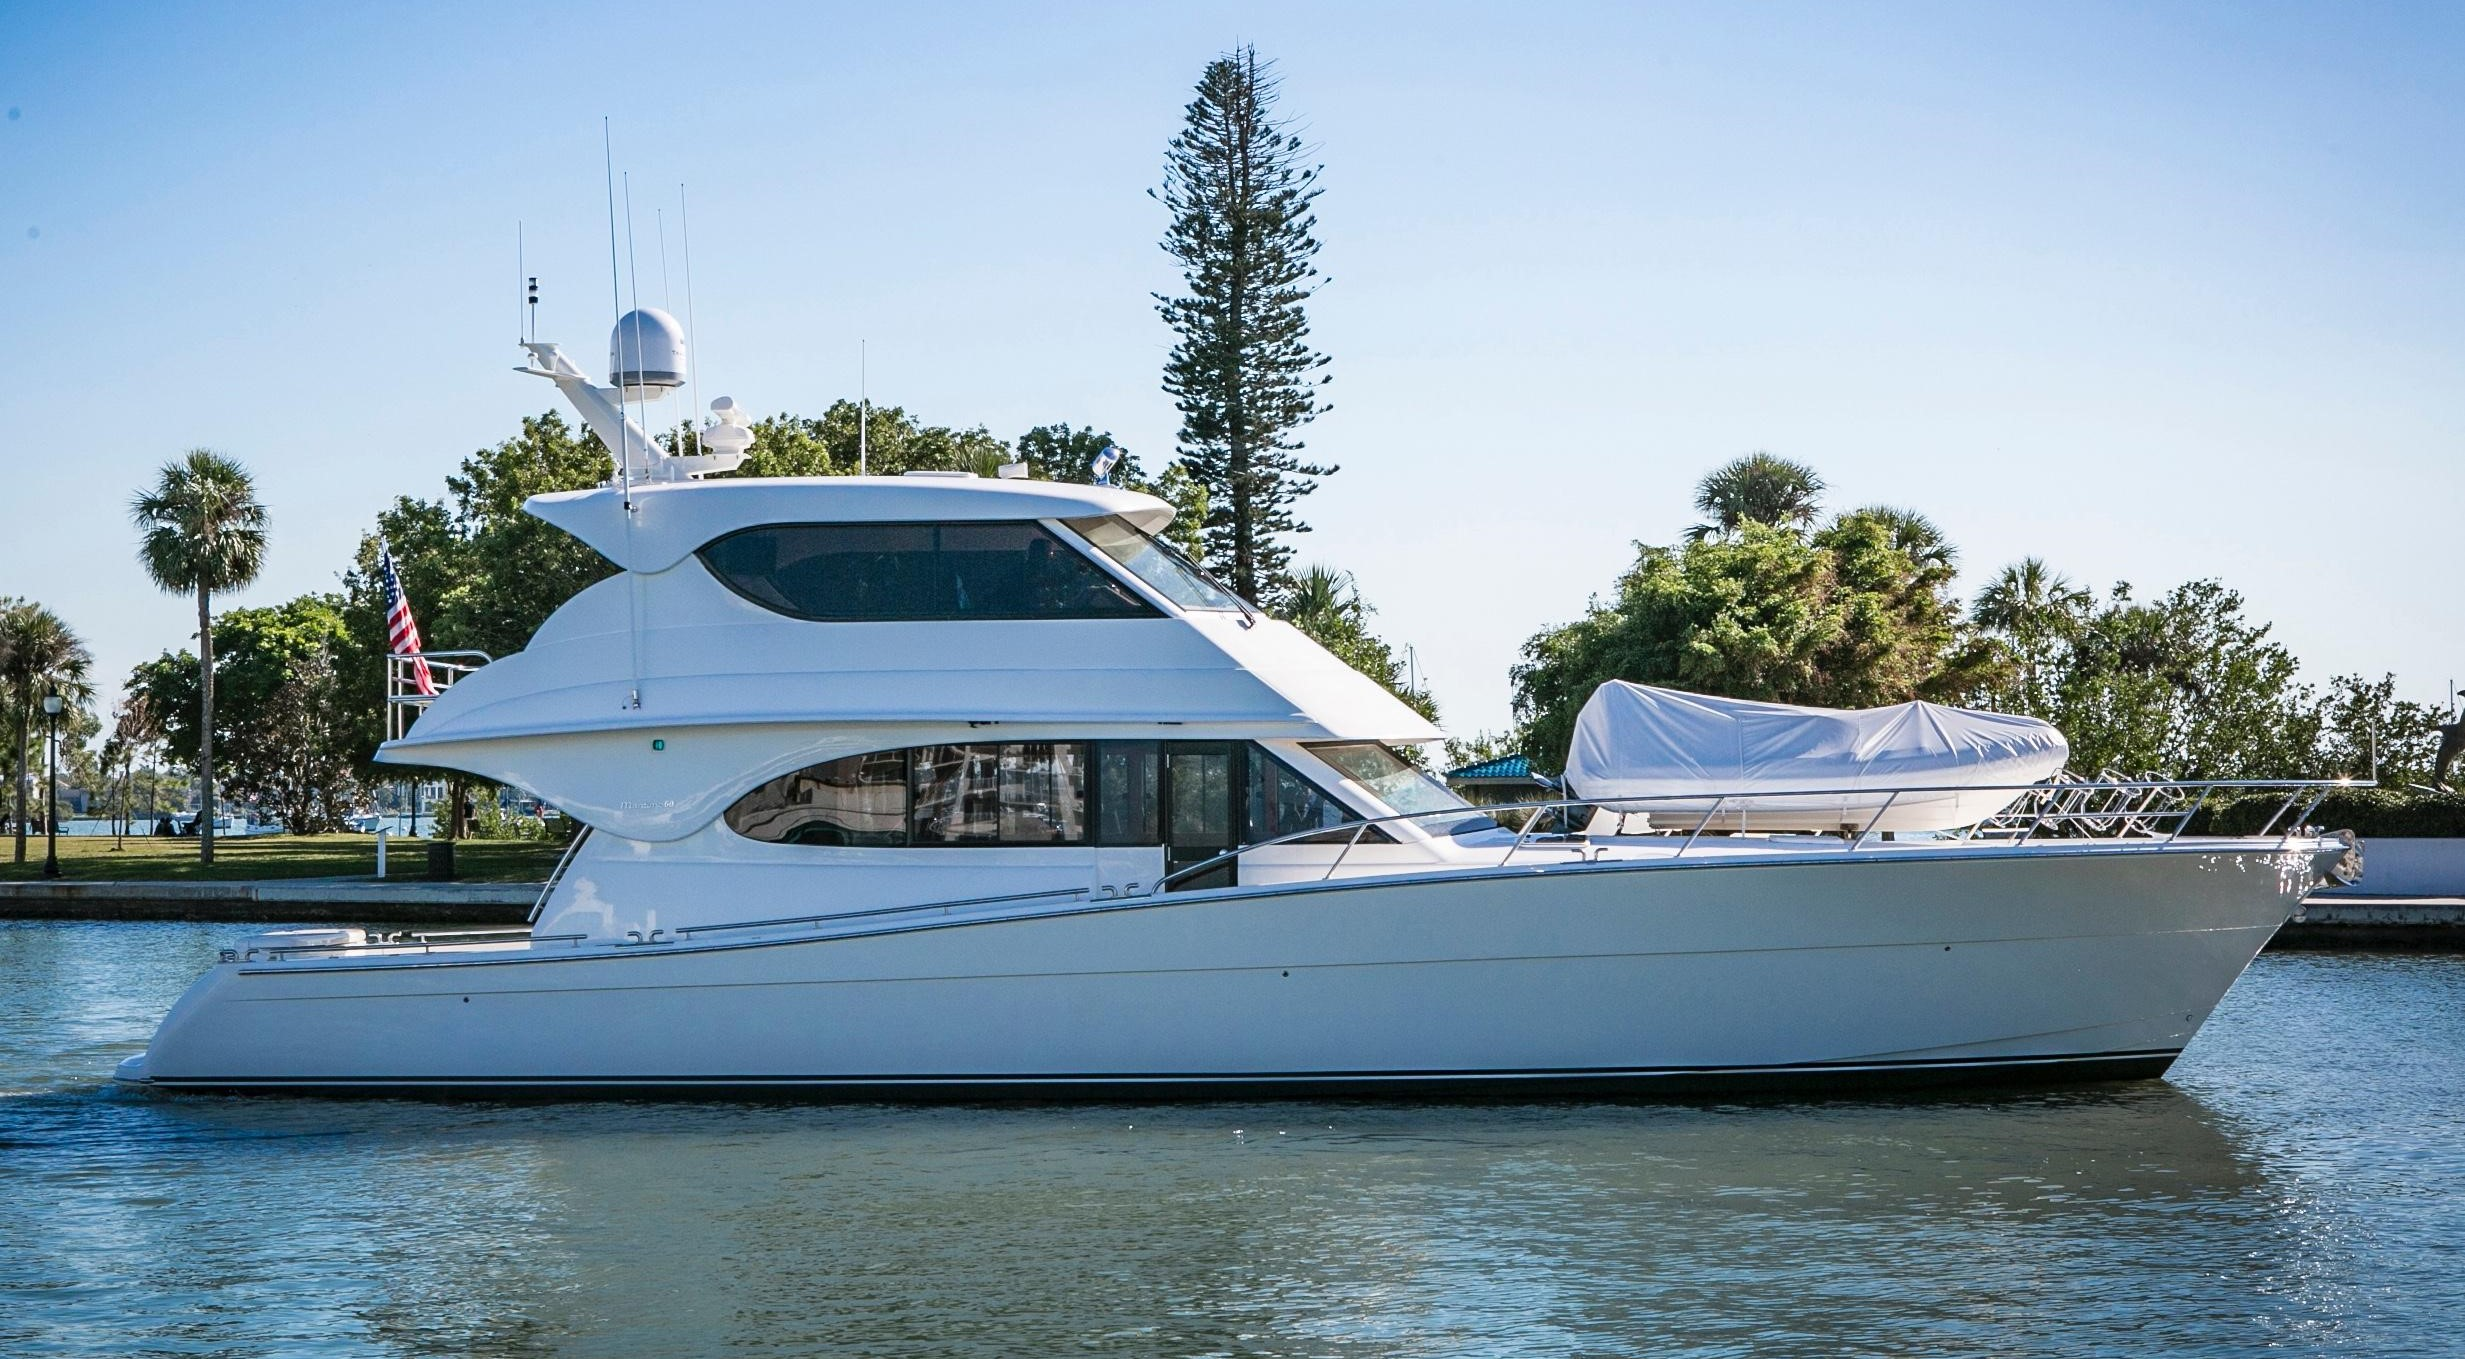 Used Maritimo Yachts for sale - including Maritimo Motor Yacht, Maritimo Cruiser models and more